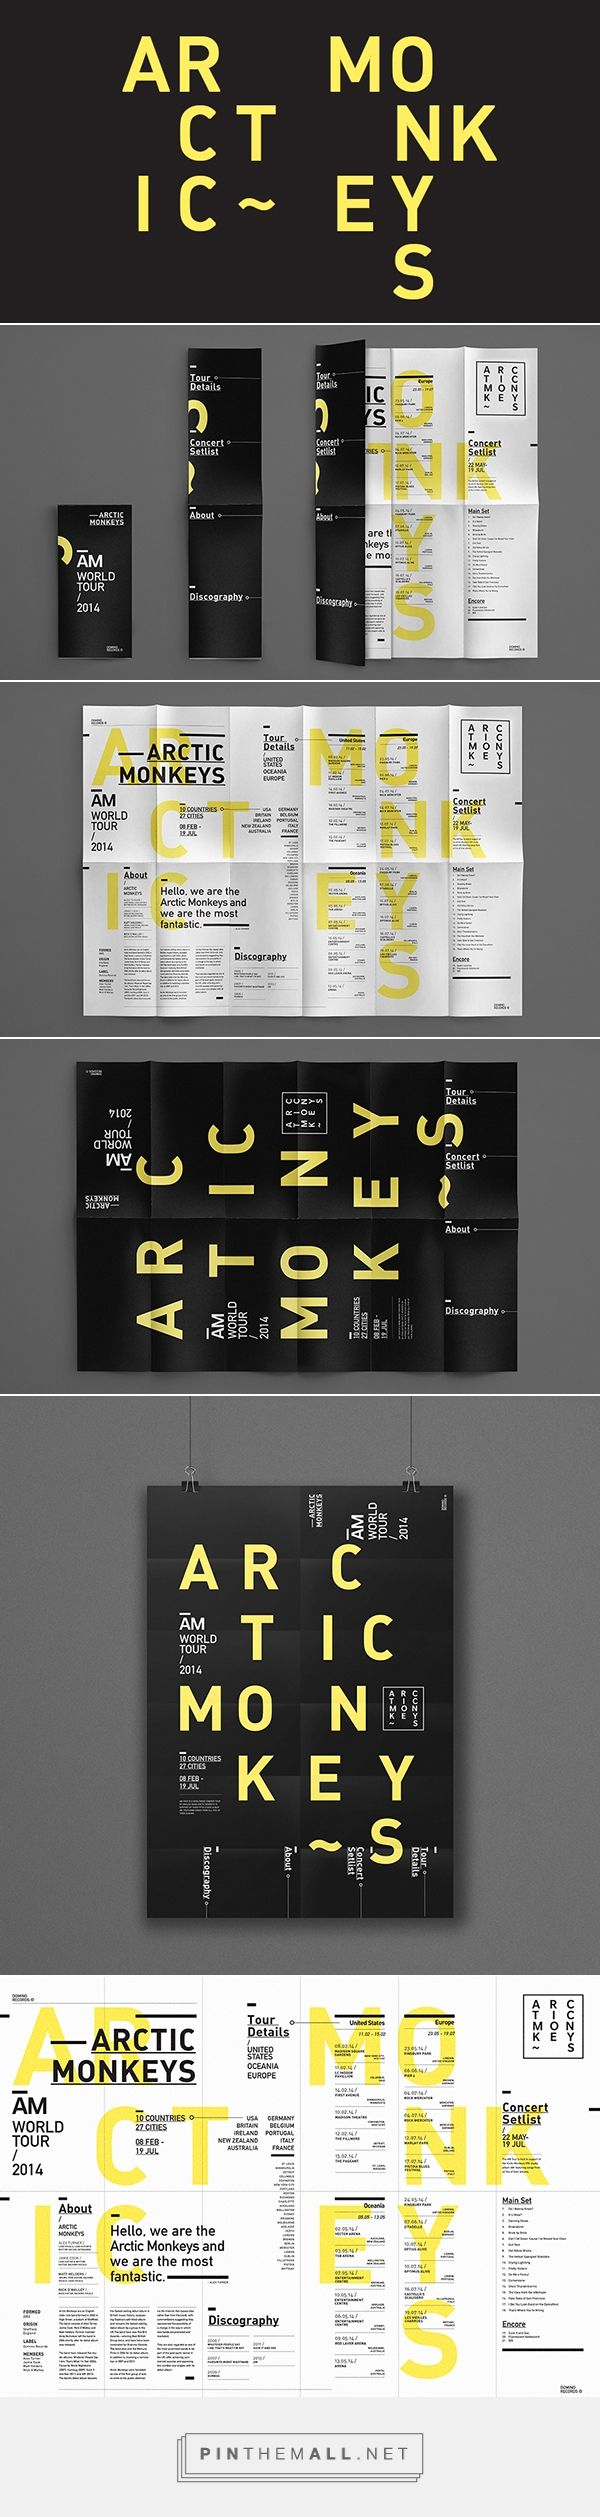 Arctic Monkeys Typographic Poster | Lee Marcus